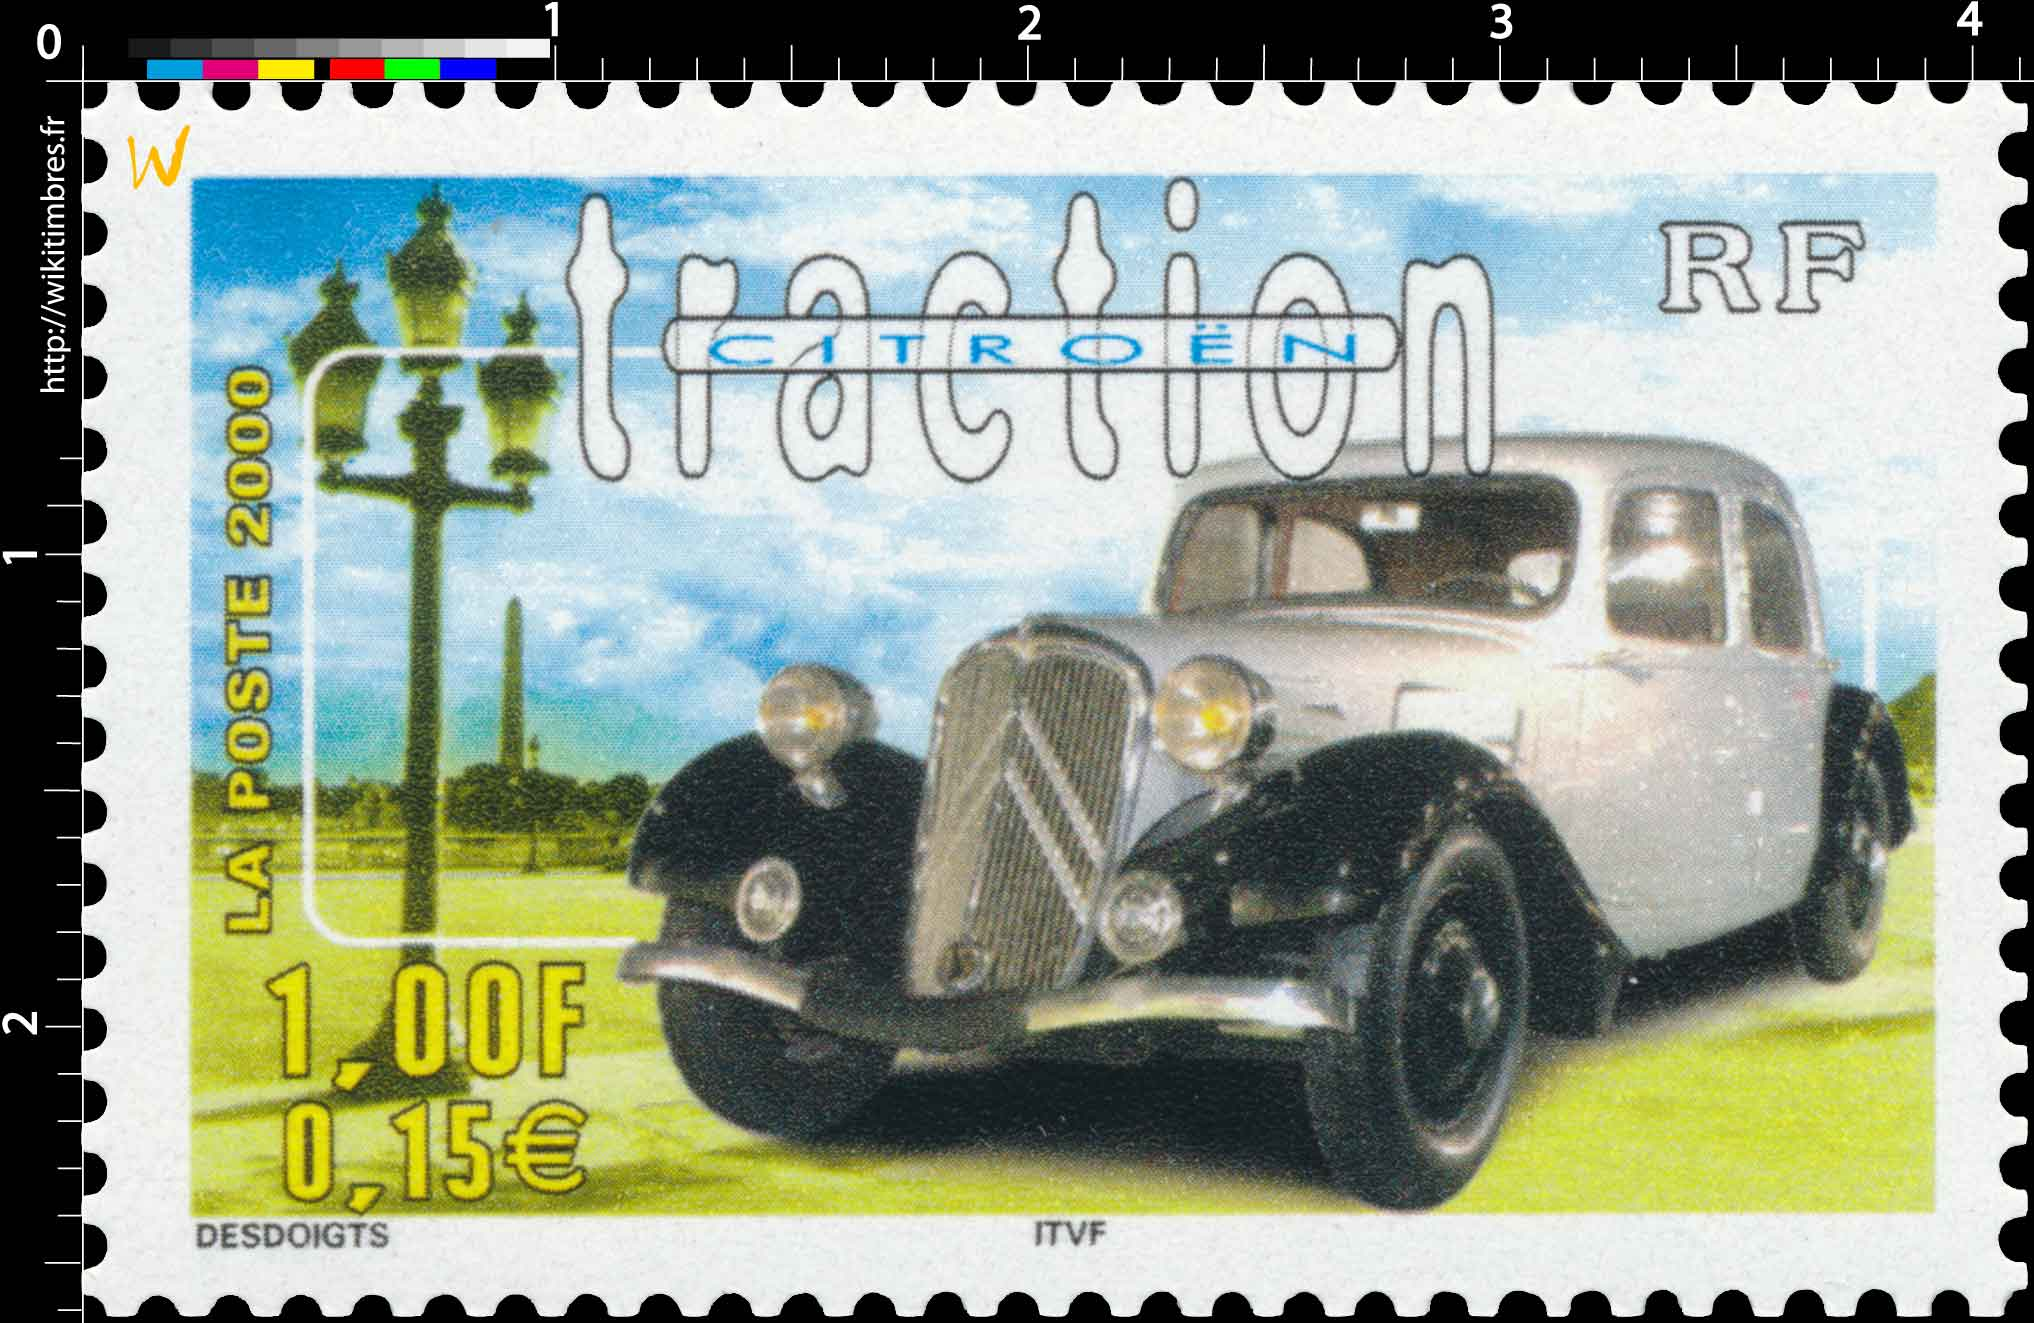 2000 CITROËN Traction